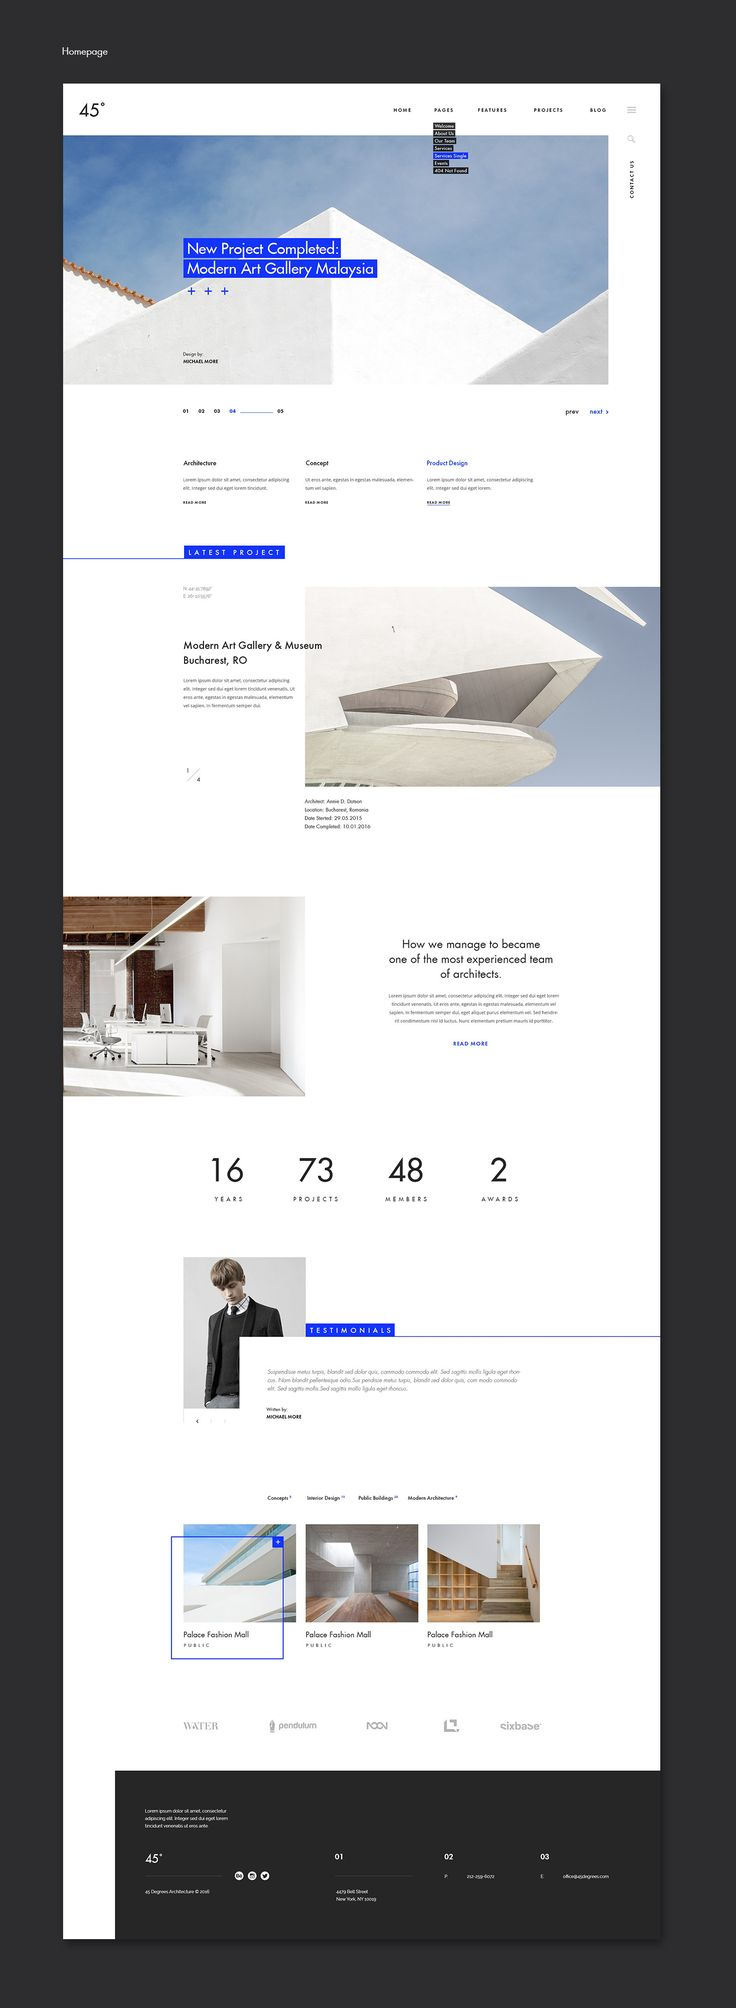 45 degrees - Architecture Studio PSD | themeforest.net on Behance